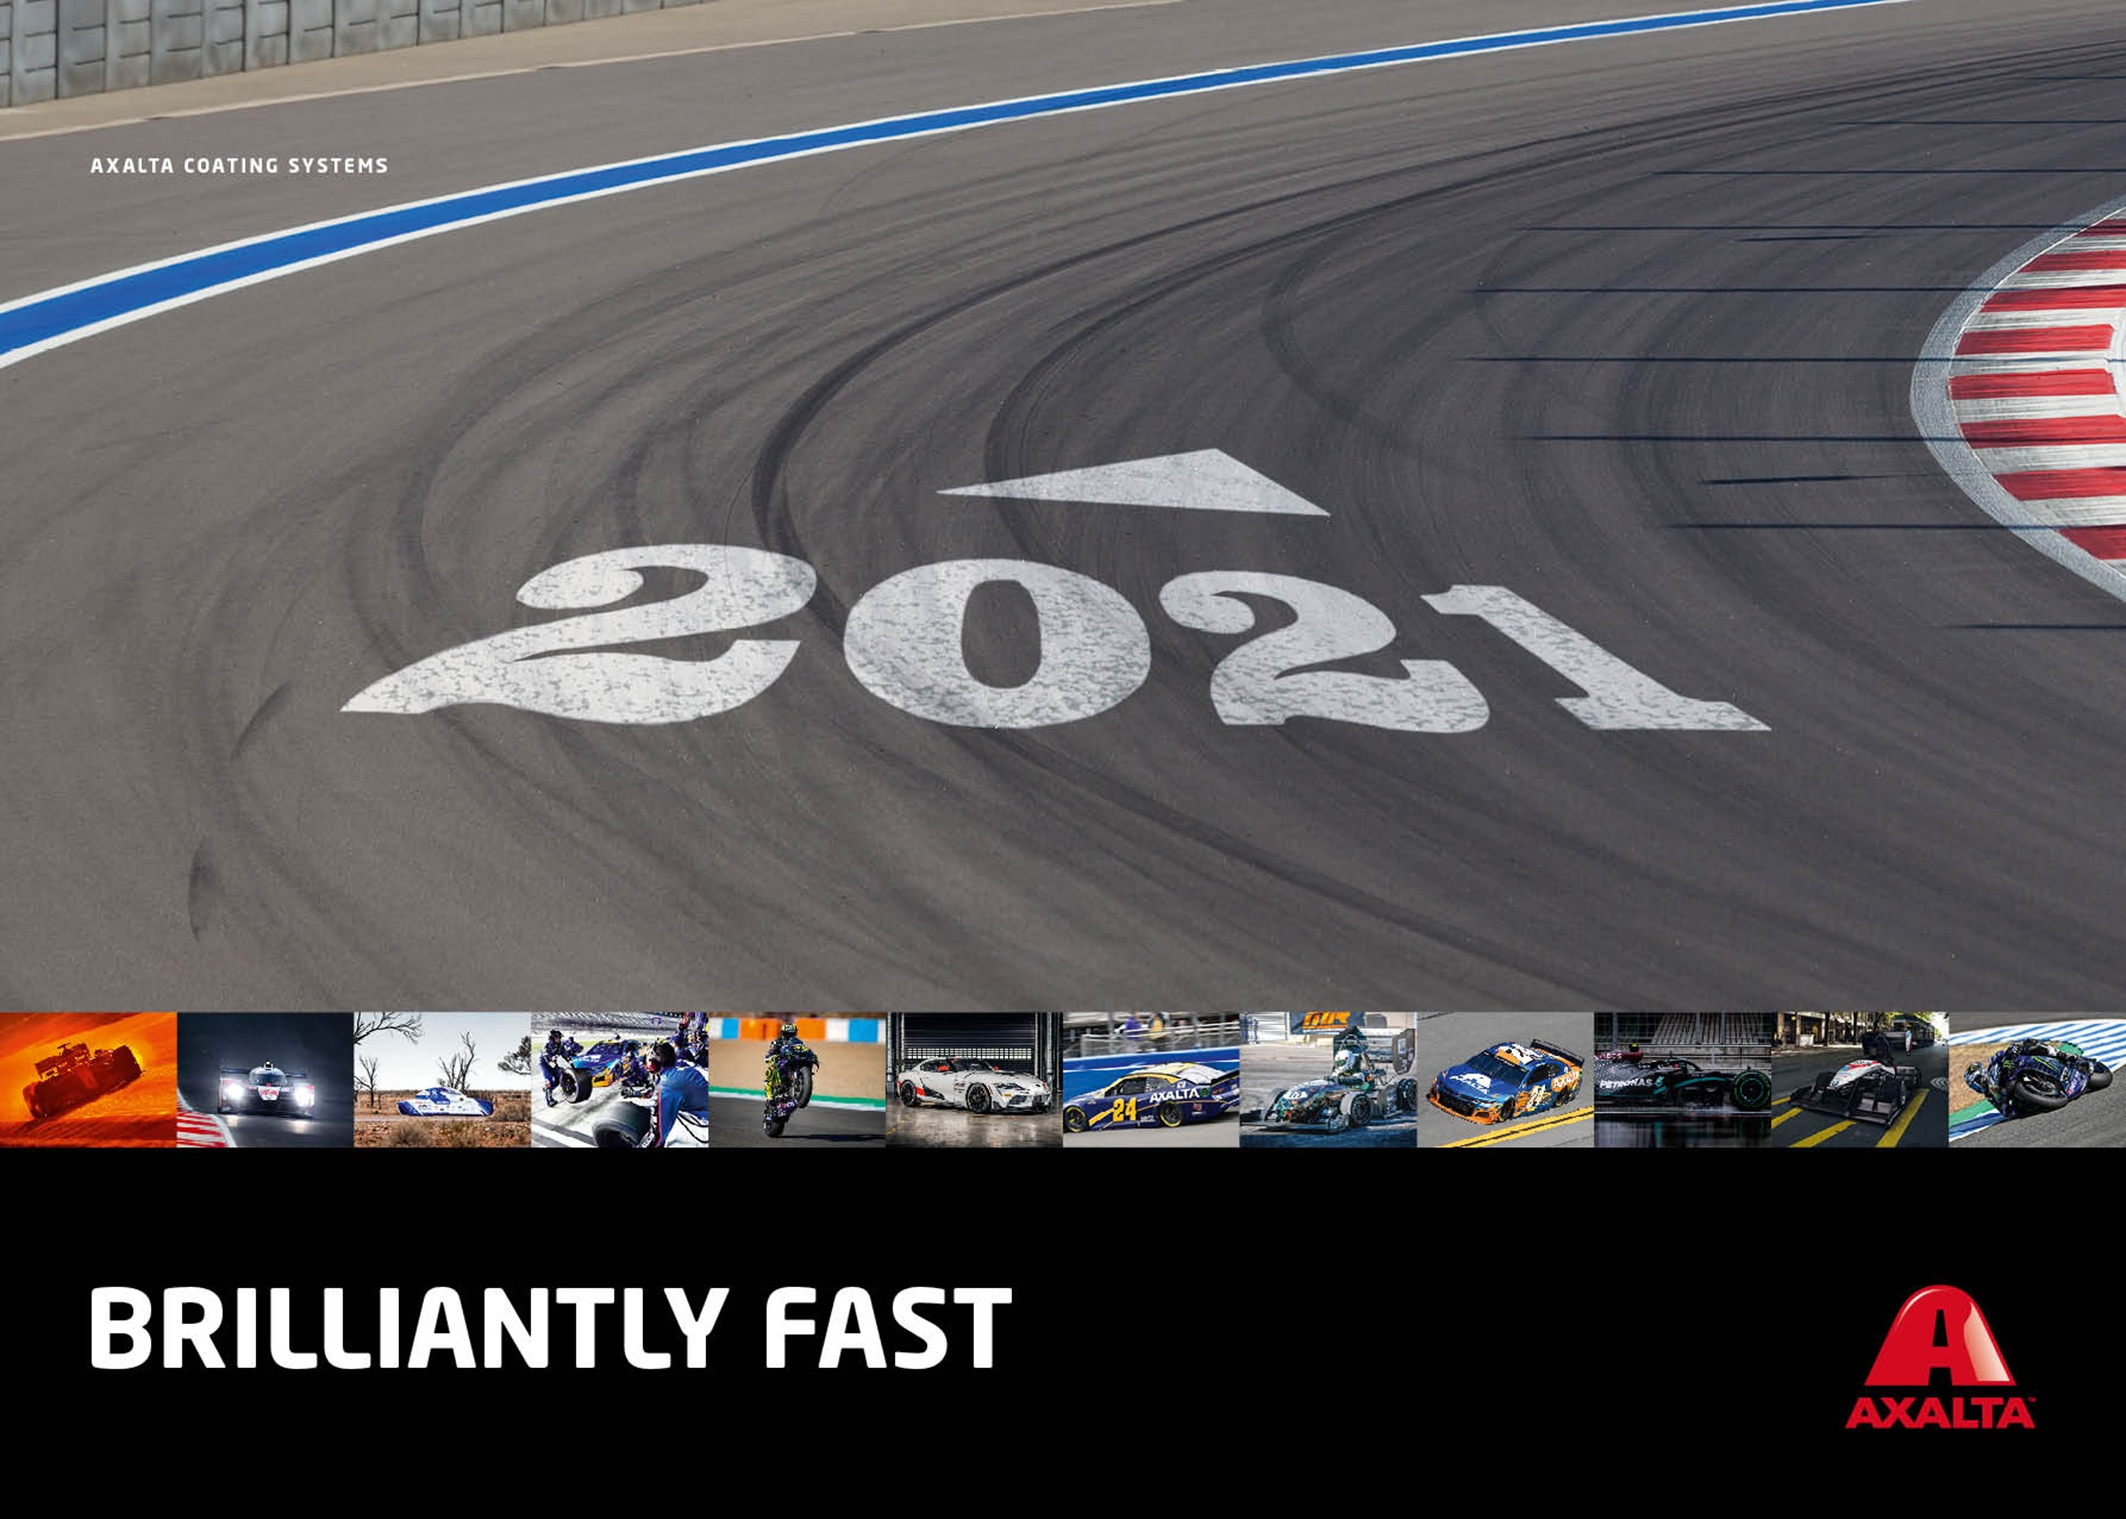 Axalta_Brilliantly_Fast_2021_Calendar